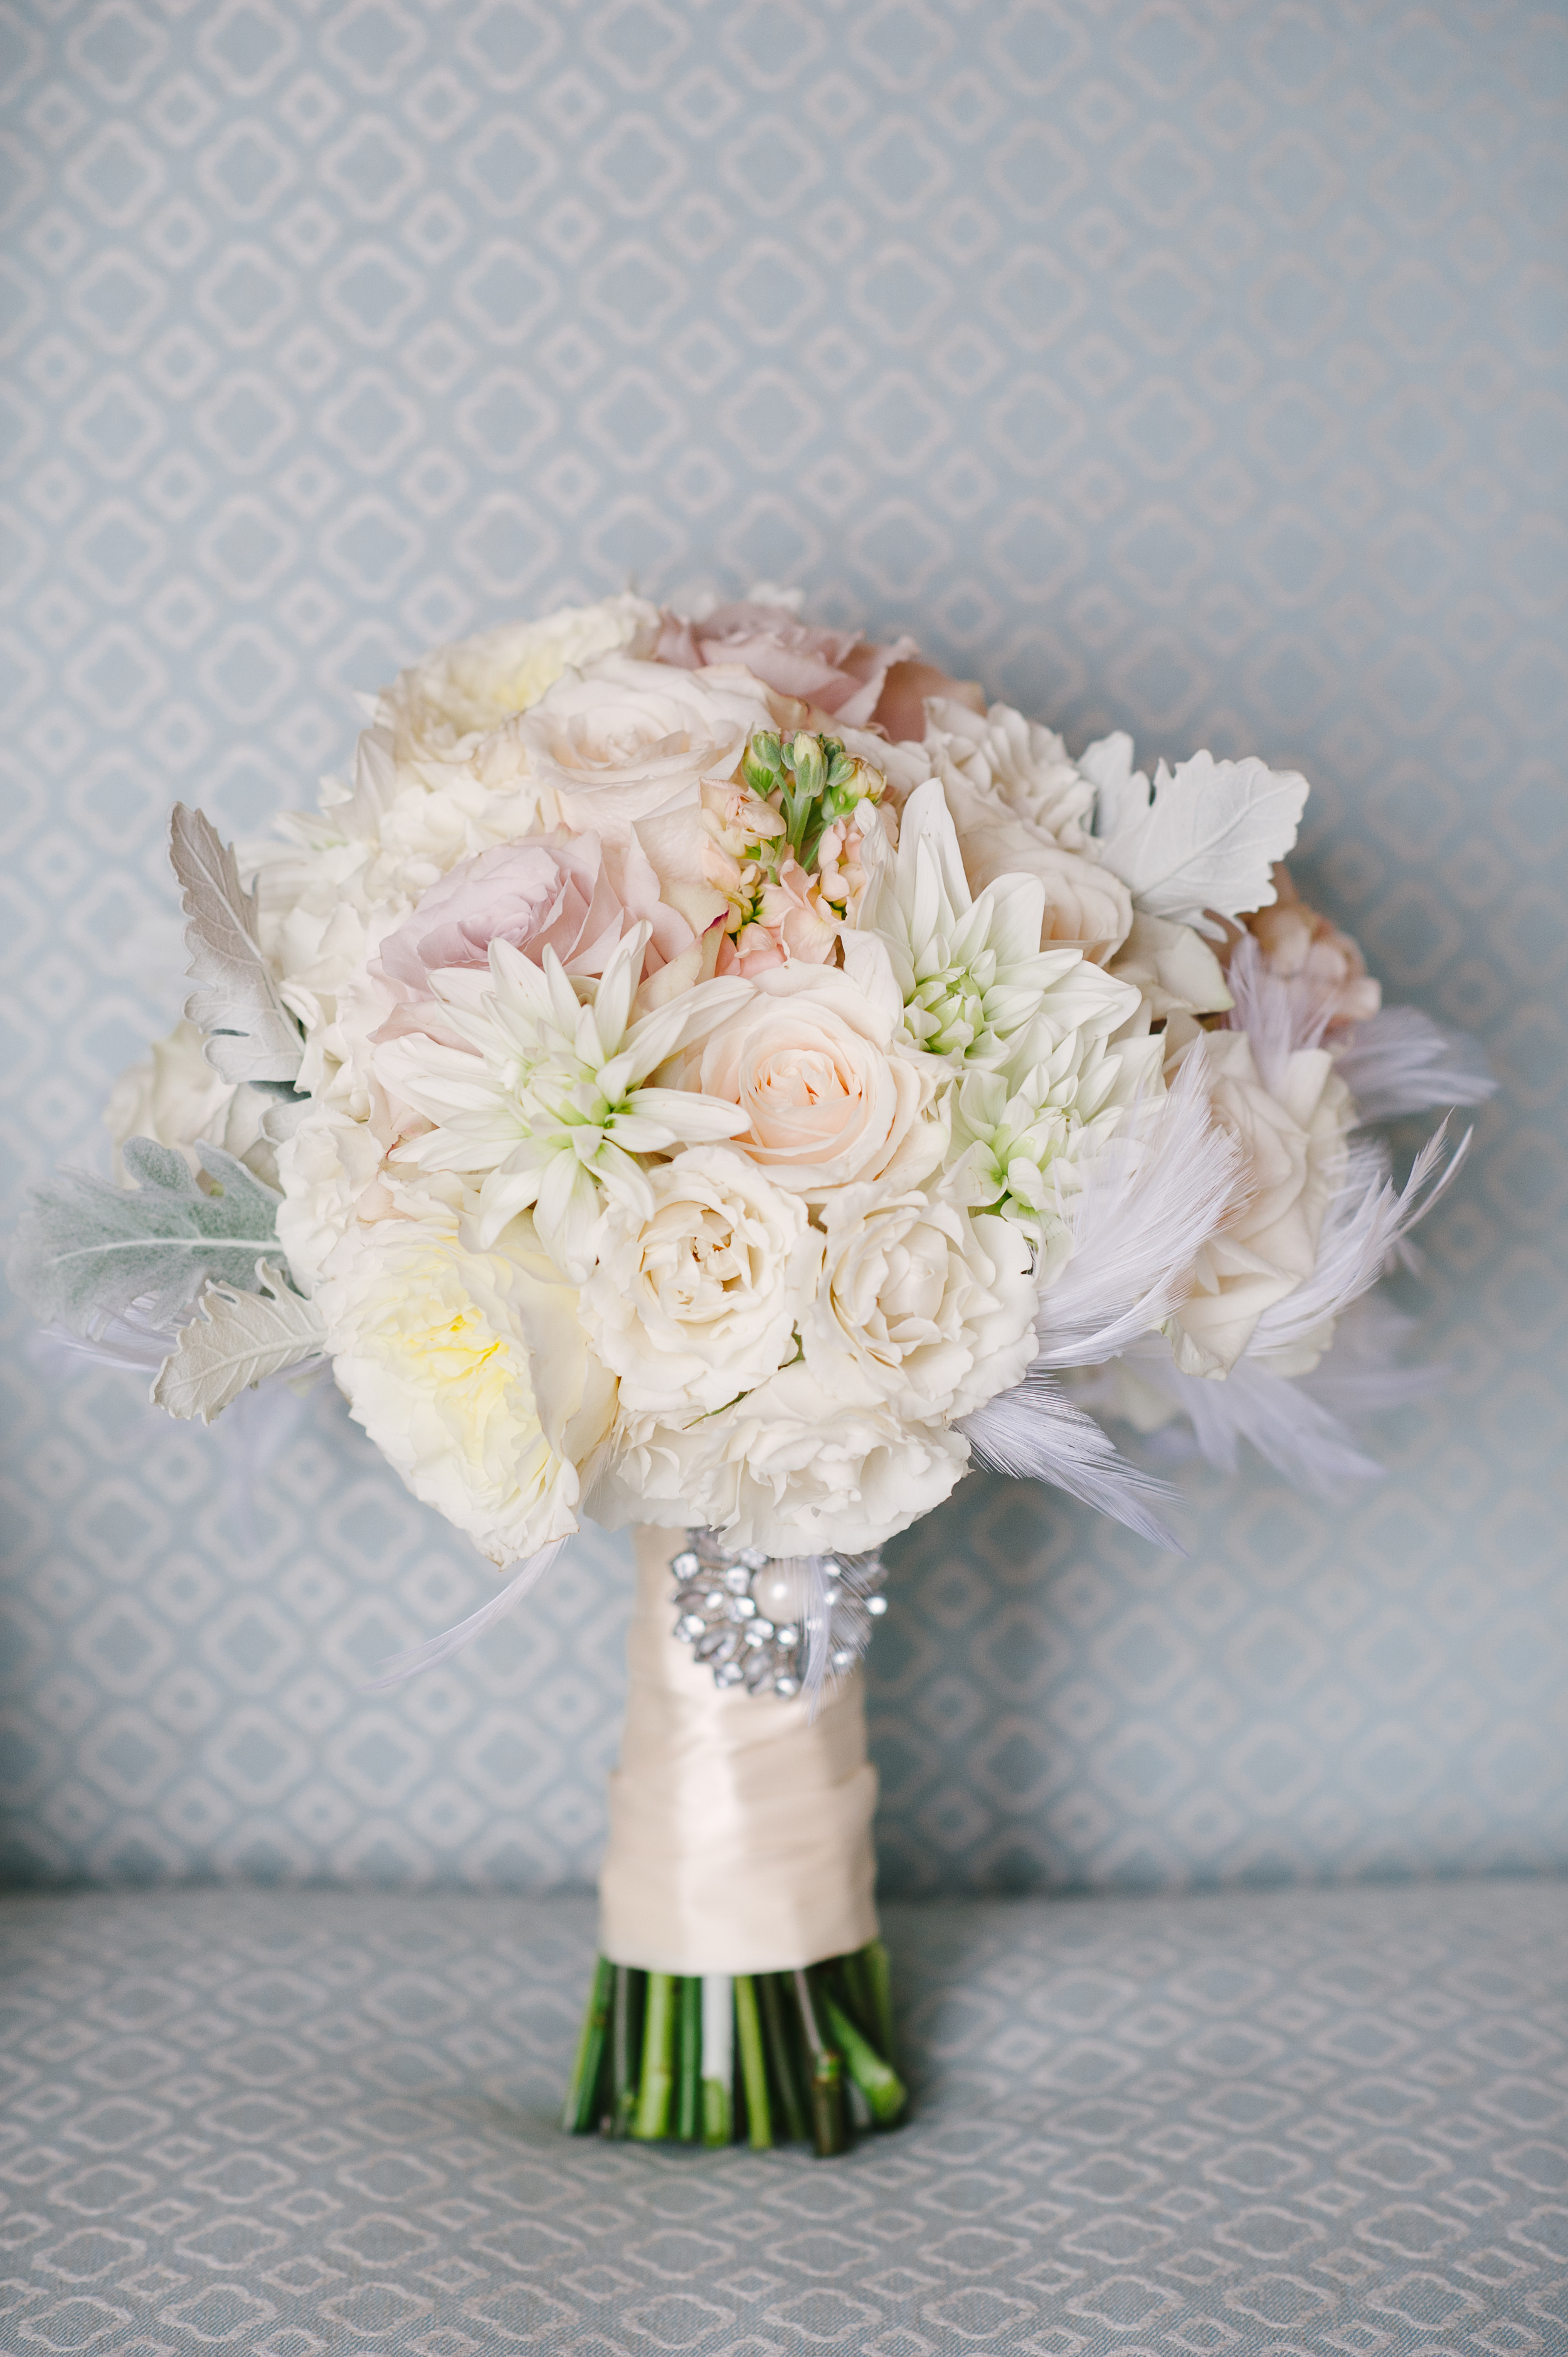 waveny_house_wedding_New_canaan_CT_Amy_Champagne_Events029.jpg